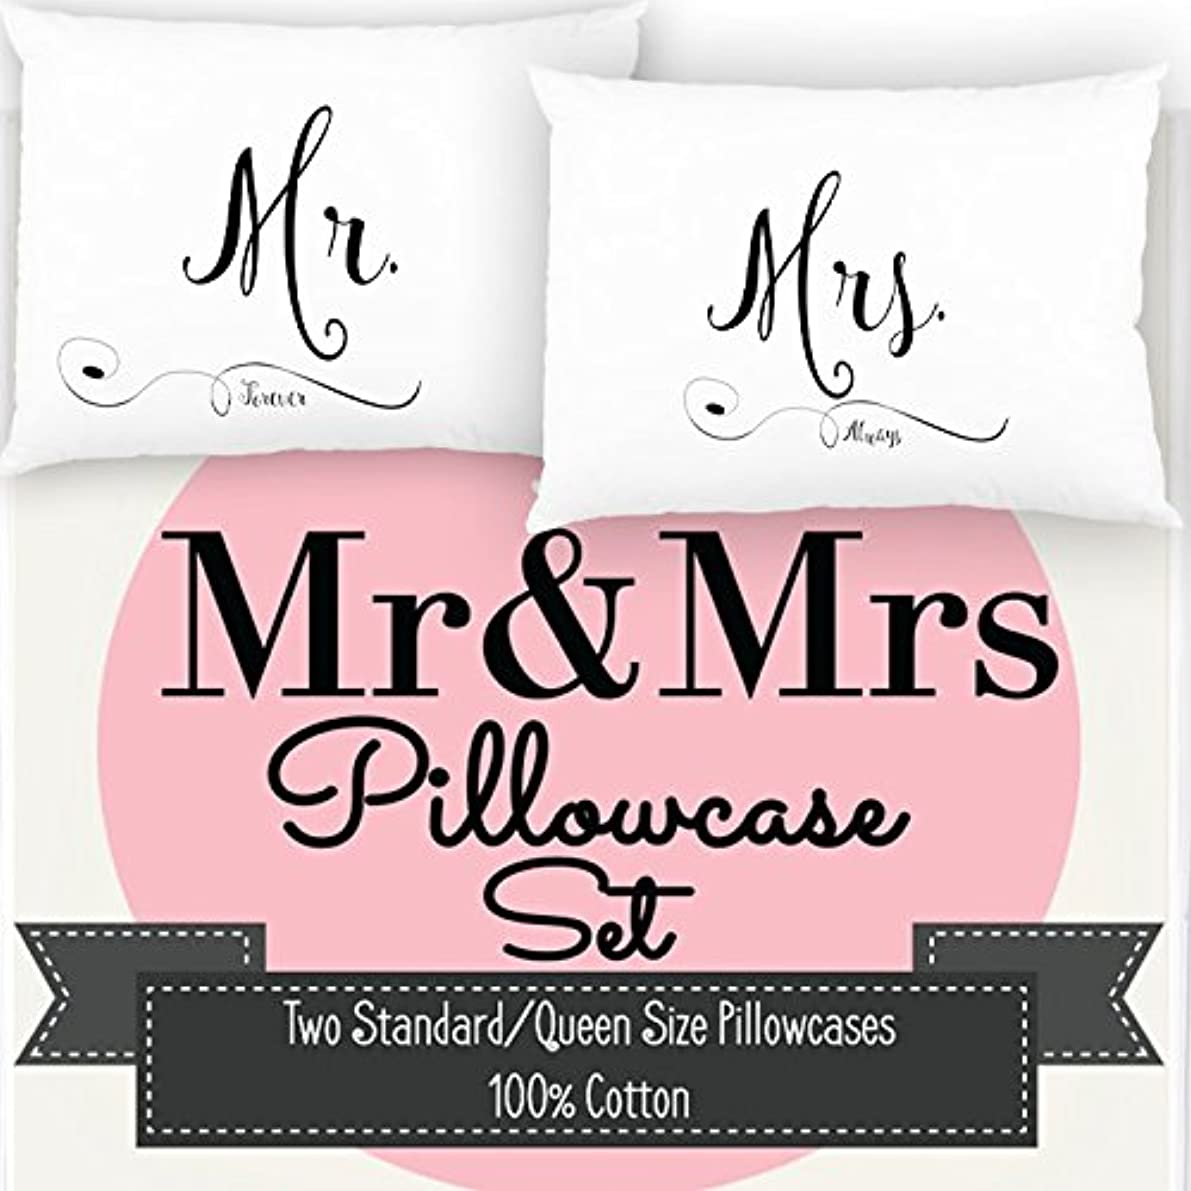 Mr and Mrs Pillowcase Set, Mr and Mrs Pillows, Perfect & Unique Wedding Gift or Anniversary Gift - 100% Cotton 300 TC - by Ocean Drop Designs